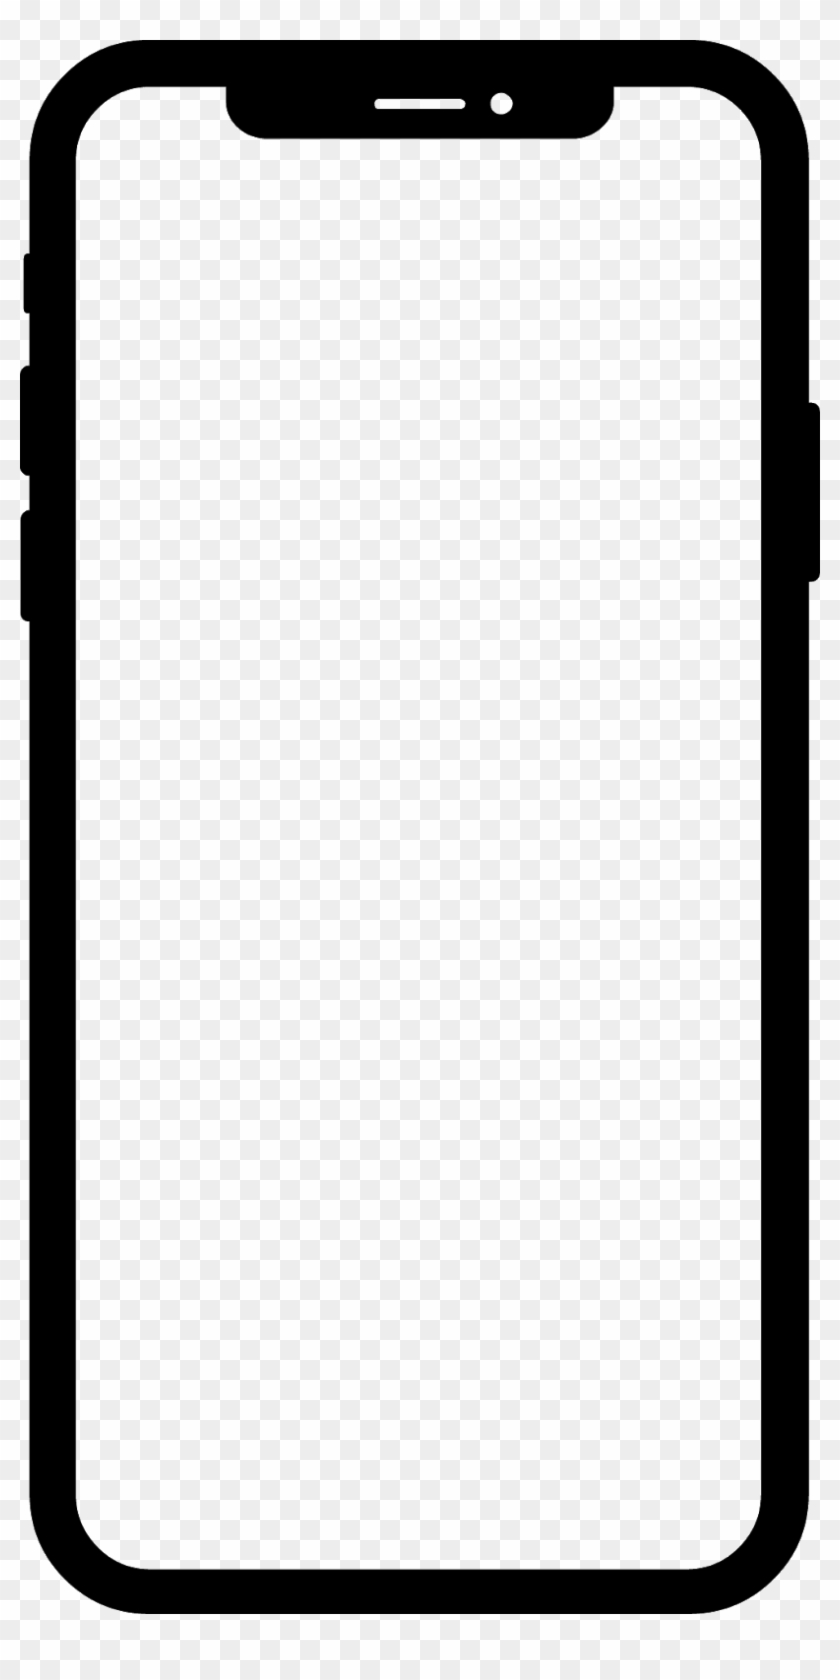 Iphone X Mockup Png : iphone, mockup, Iphone, Template, Transparent, 813x1600(#2340118), PngFind